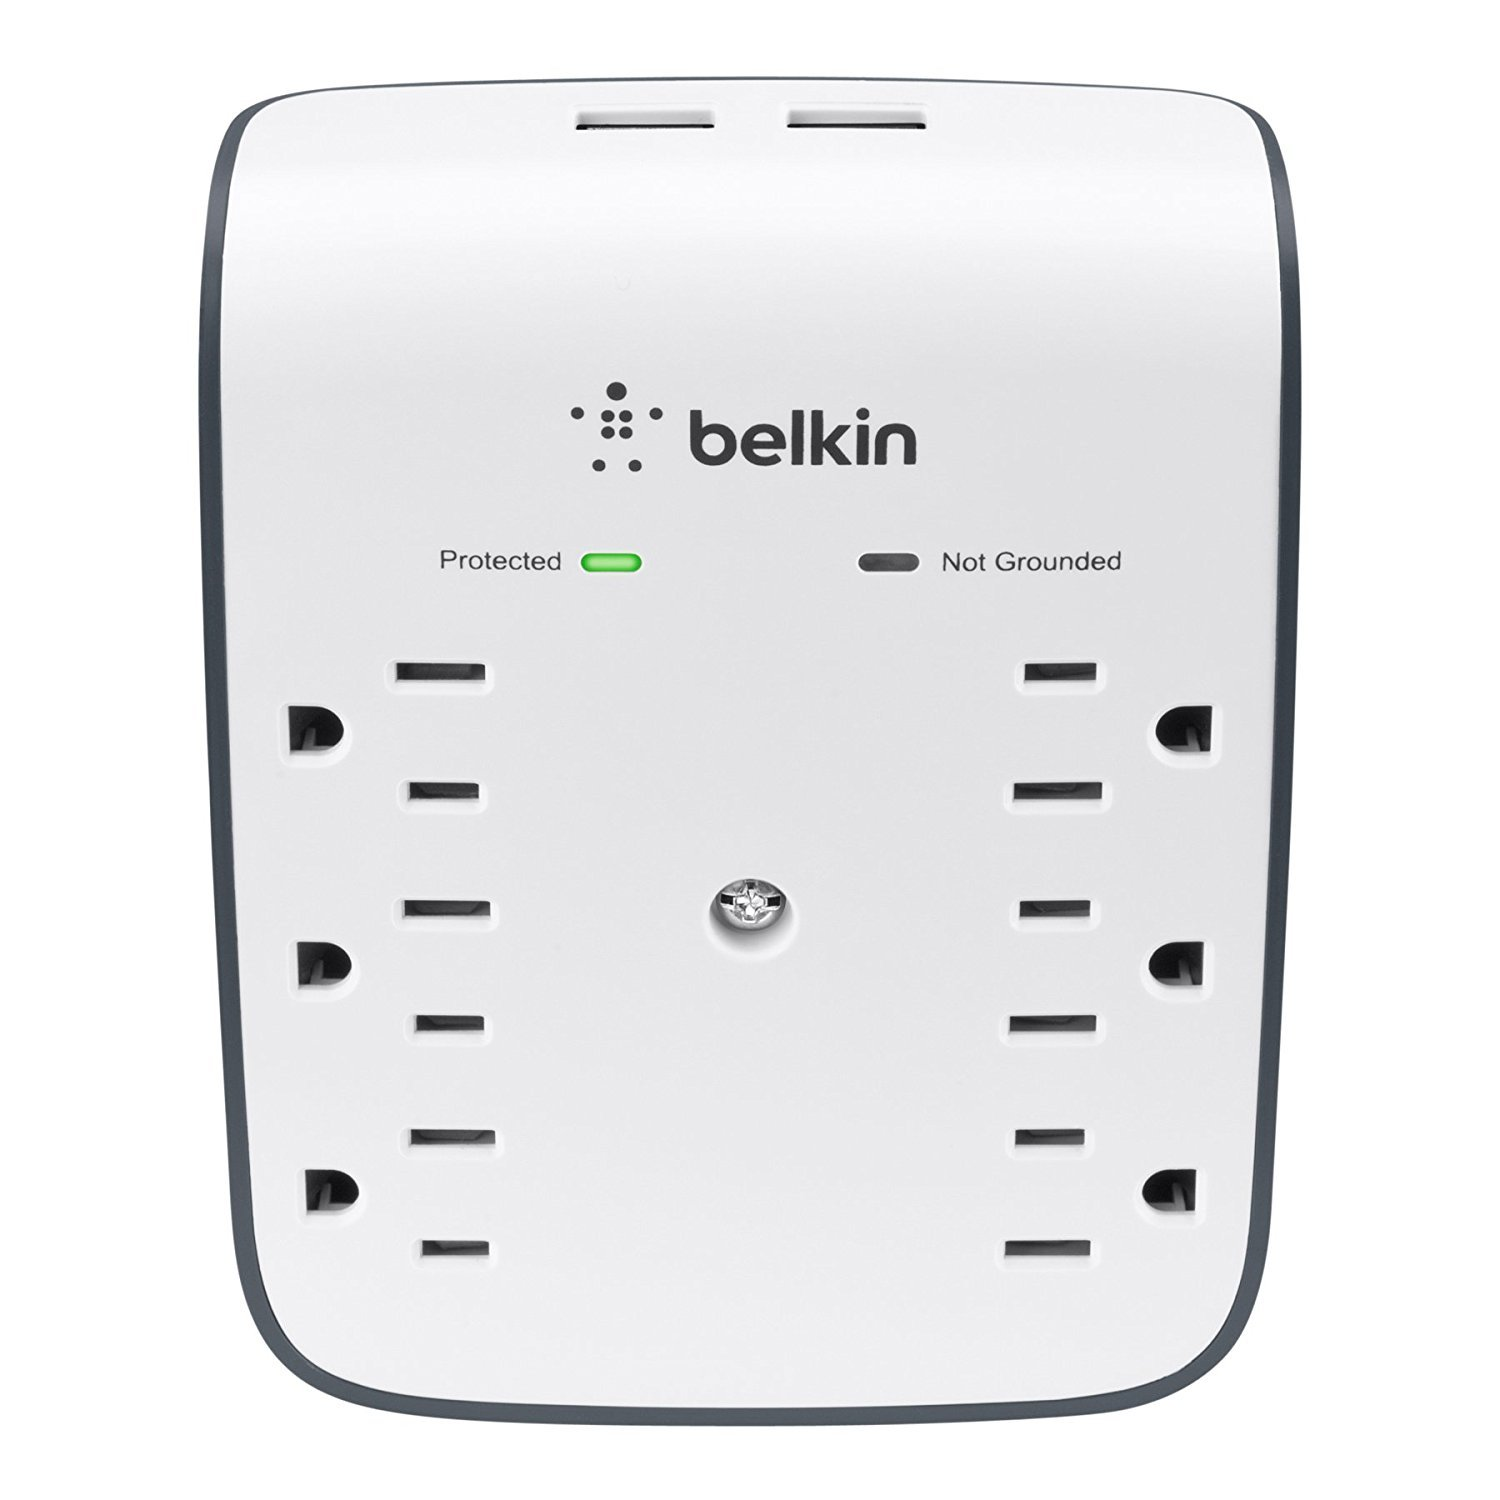 Belkin SurgePlus USB Wall Mount Surge protector